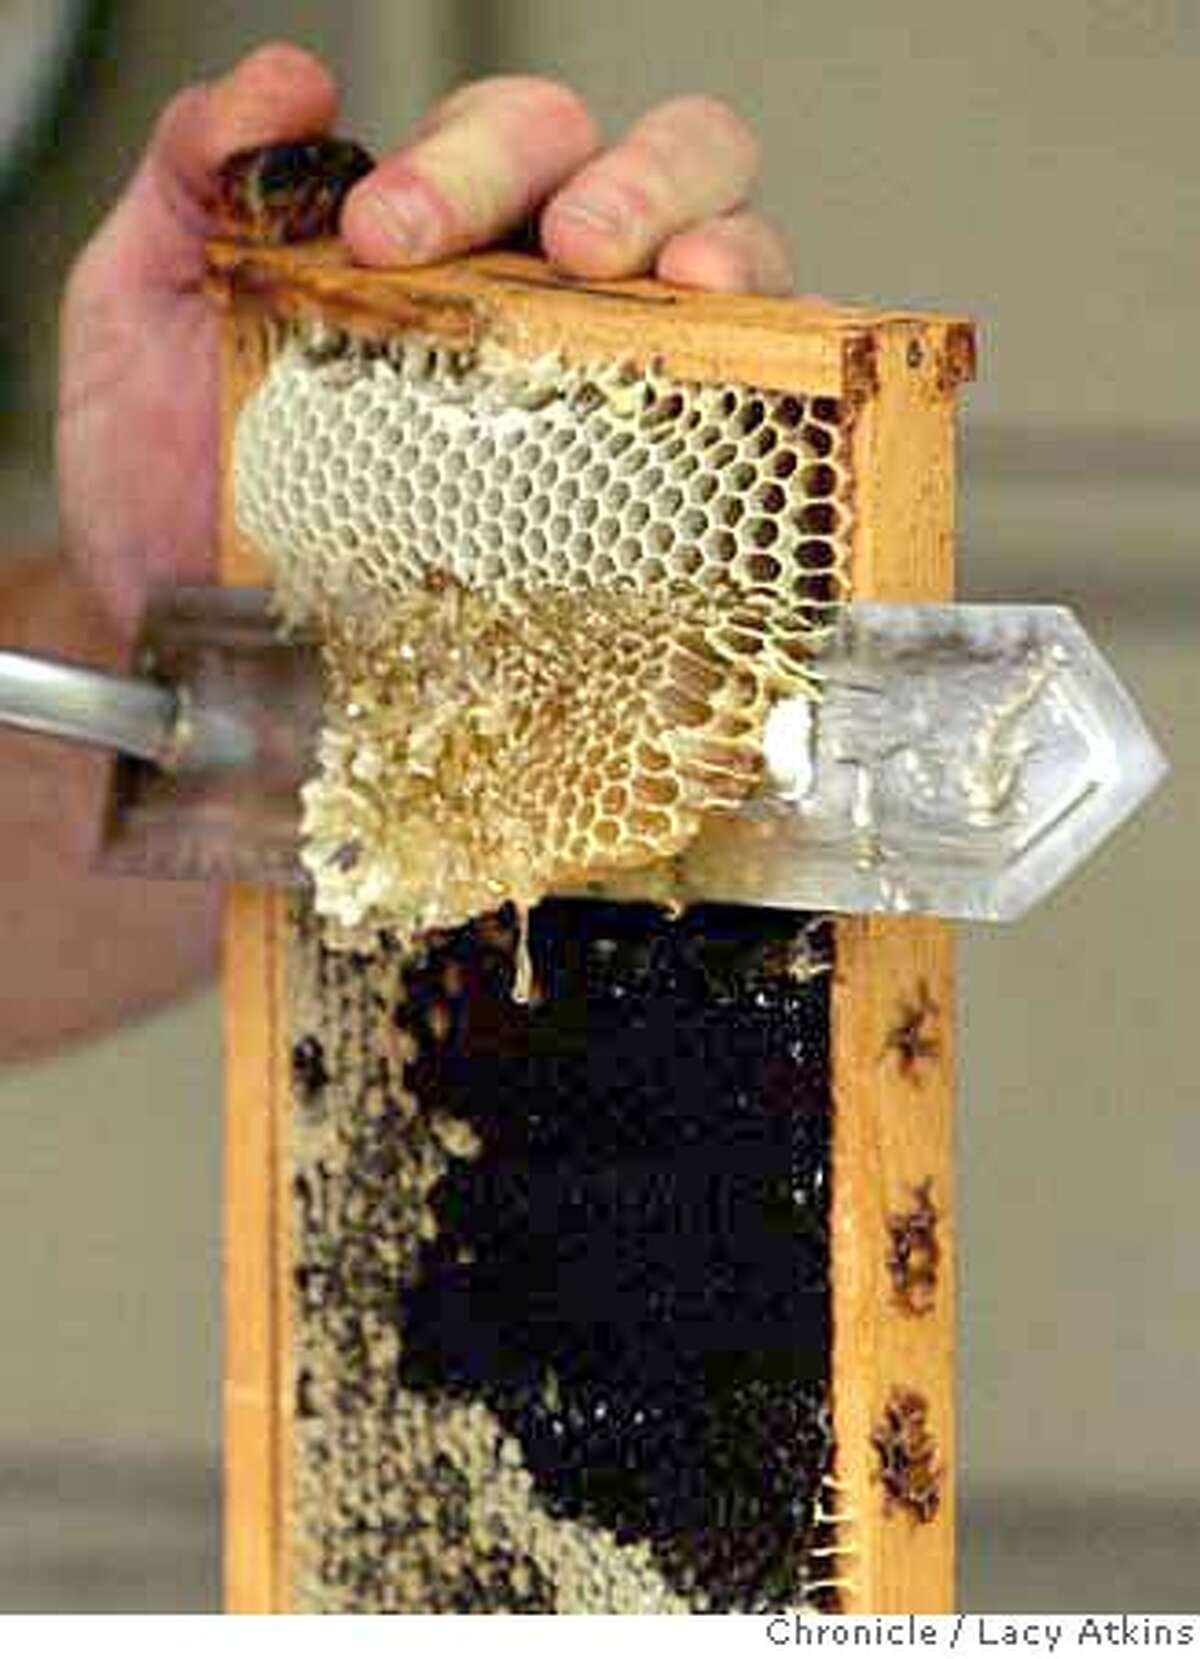 Byron Waibel uses a hot knife to cut the caps off the honey comb on the frame if the process of extraction from his bee colony, Friday Sept. 29, 2007 in San Francisco, Ca. Lacy Atkins / The Chronicle Photo taken on 9/28/07, in San Francisco, CA, USA MANDATORY CREDIT FOR PHOTOG AND SAN FRANCISCO CHRONICLE/NO SALES-MAGS OUT